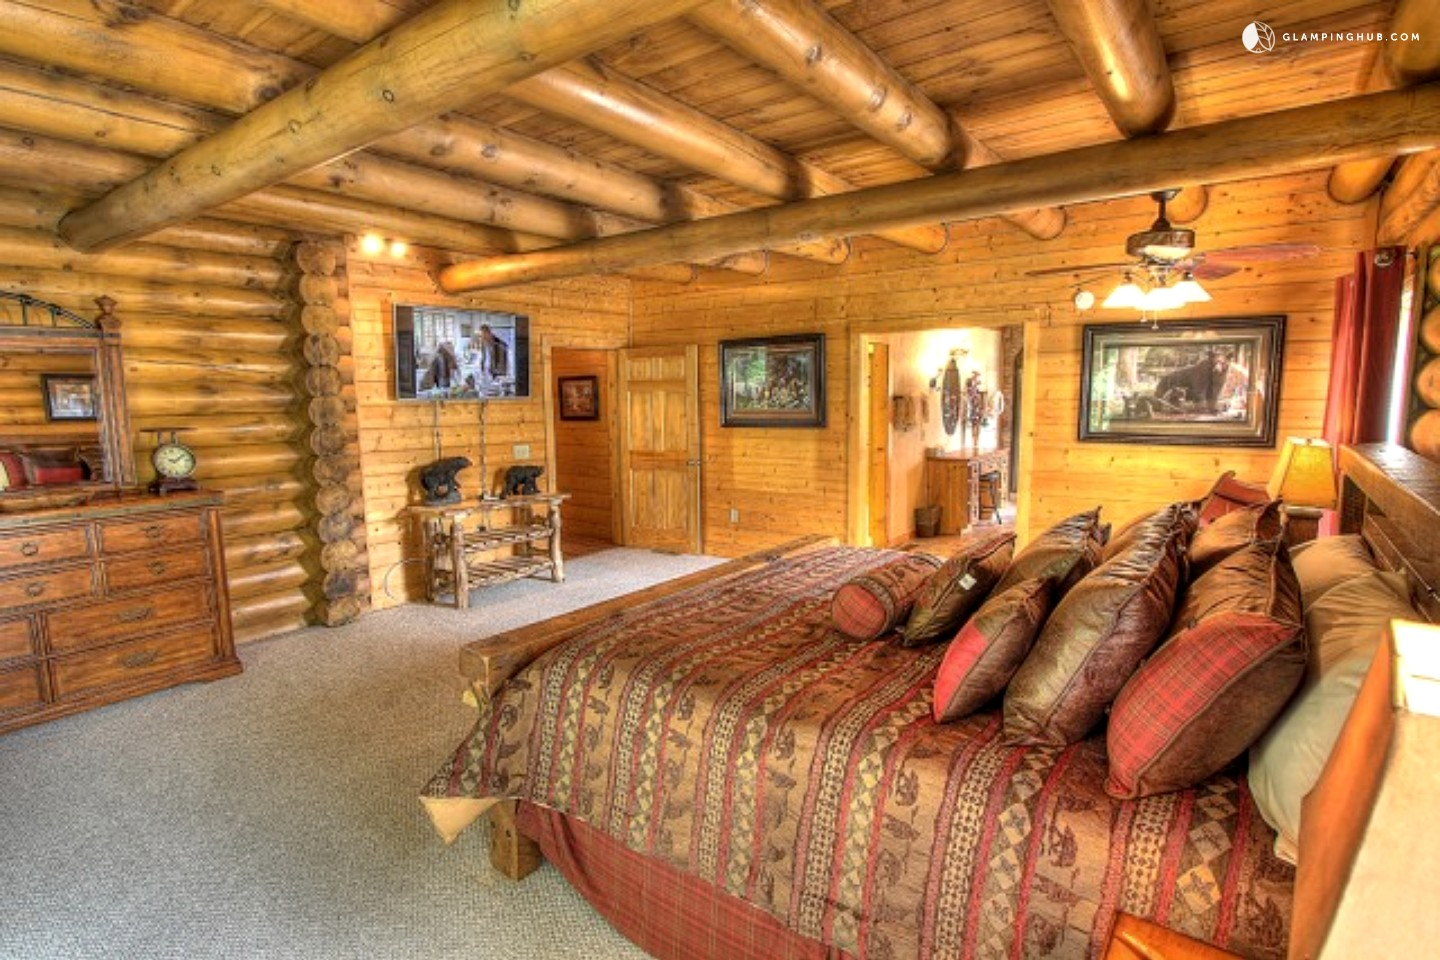 Luxury cabin rental near the great smoky mountains for Luxury pet friendly cabins pigeon forge